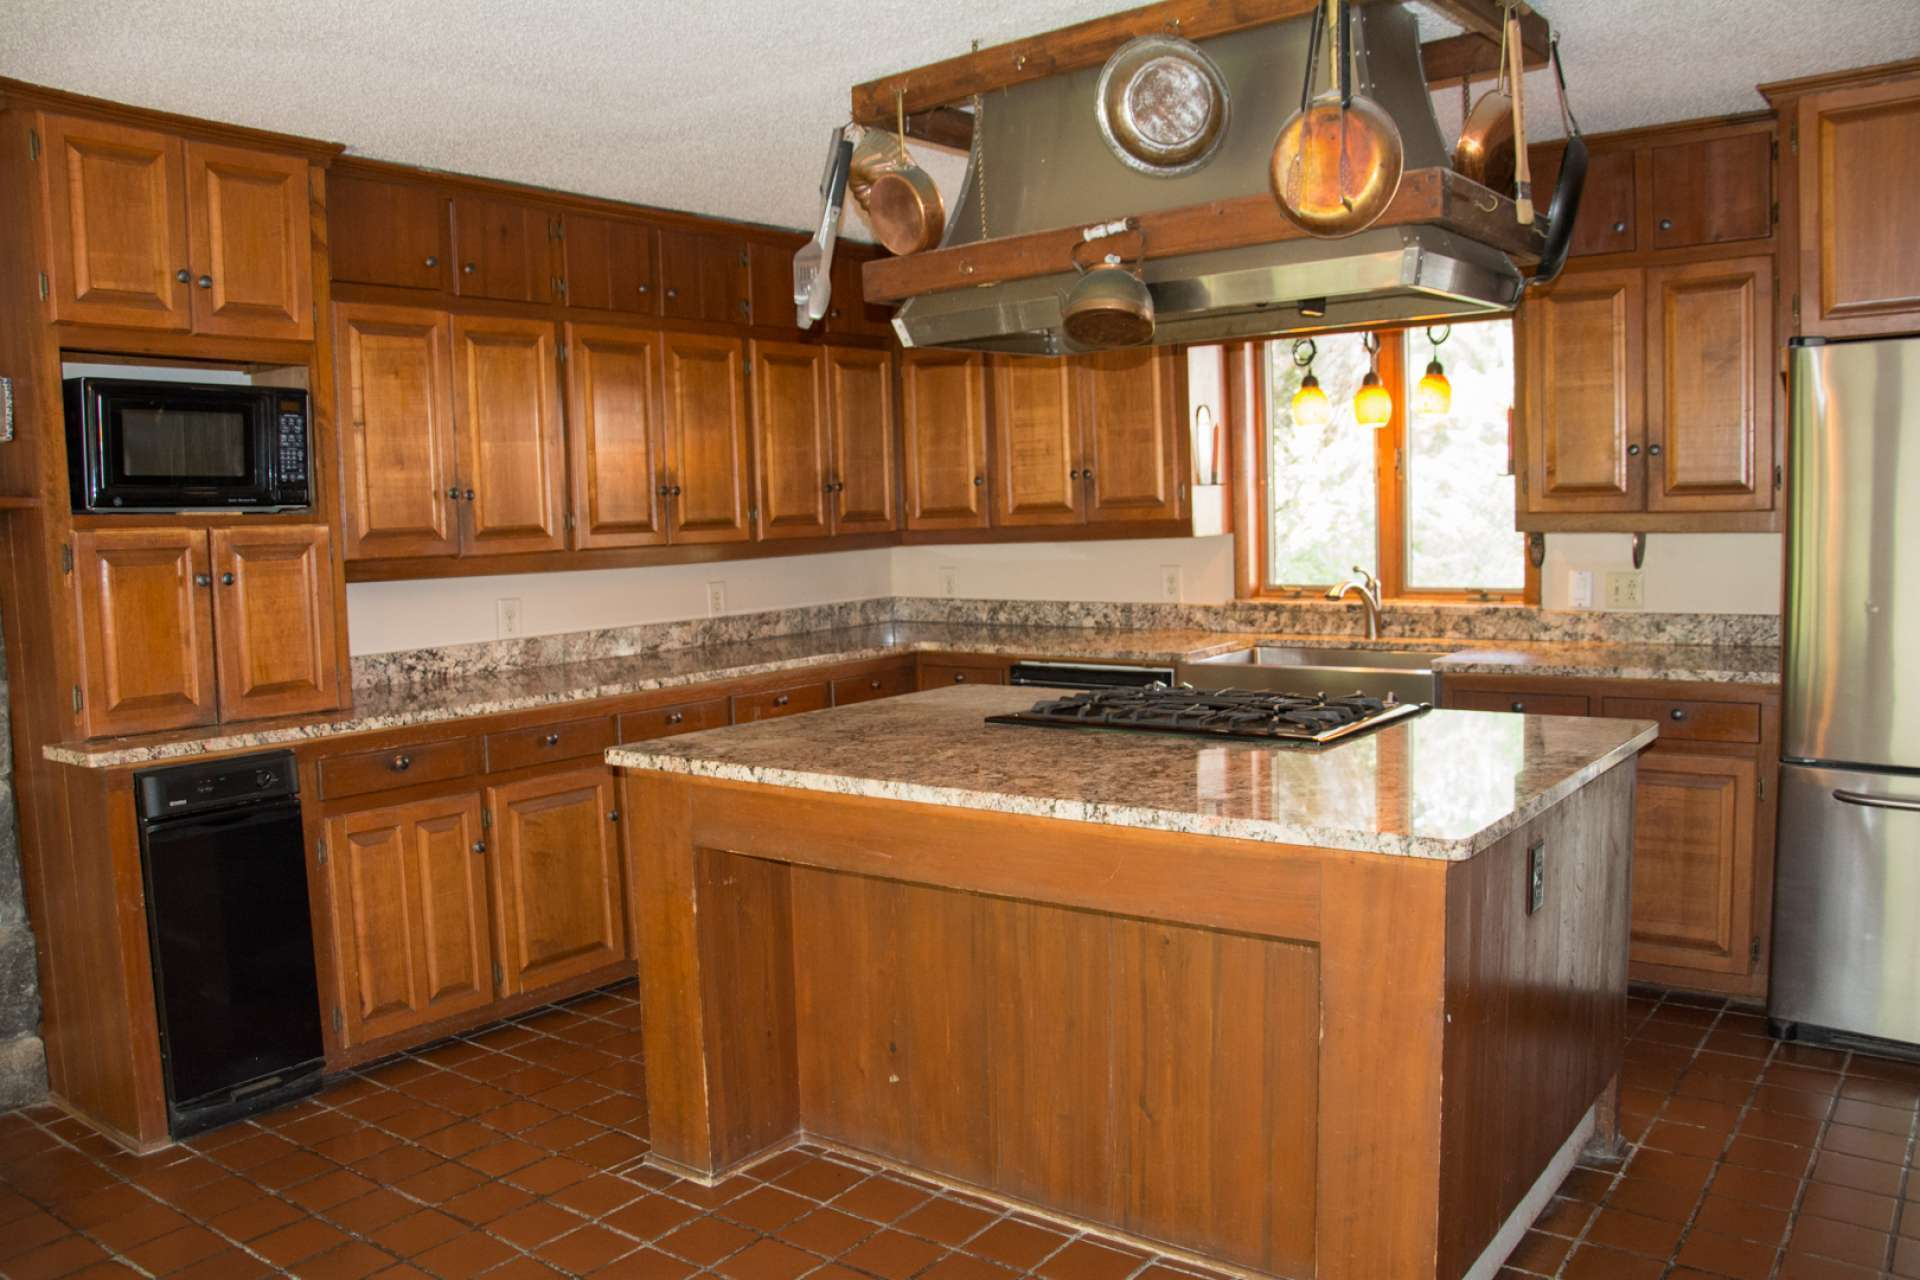 A spacious kitchen features granite counter tops, apron sink, large center island, gas range, and tiled floor.